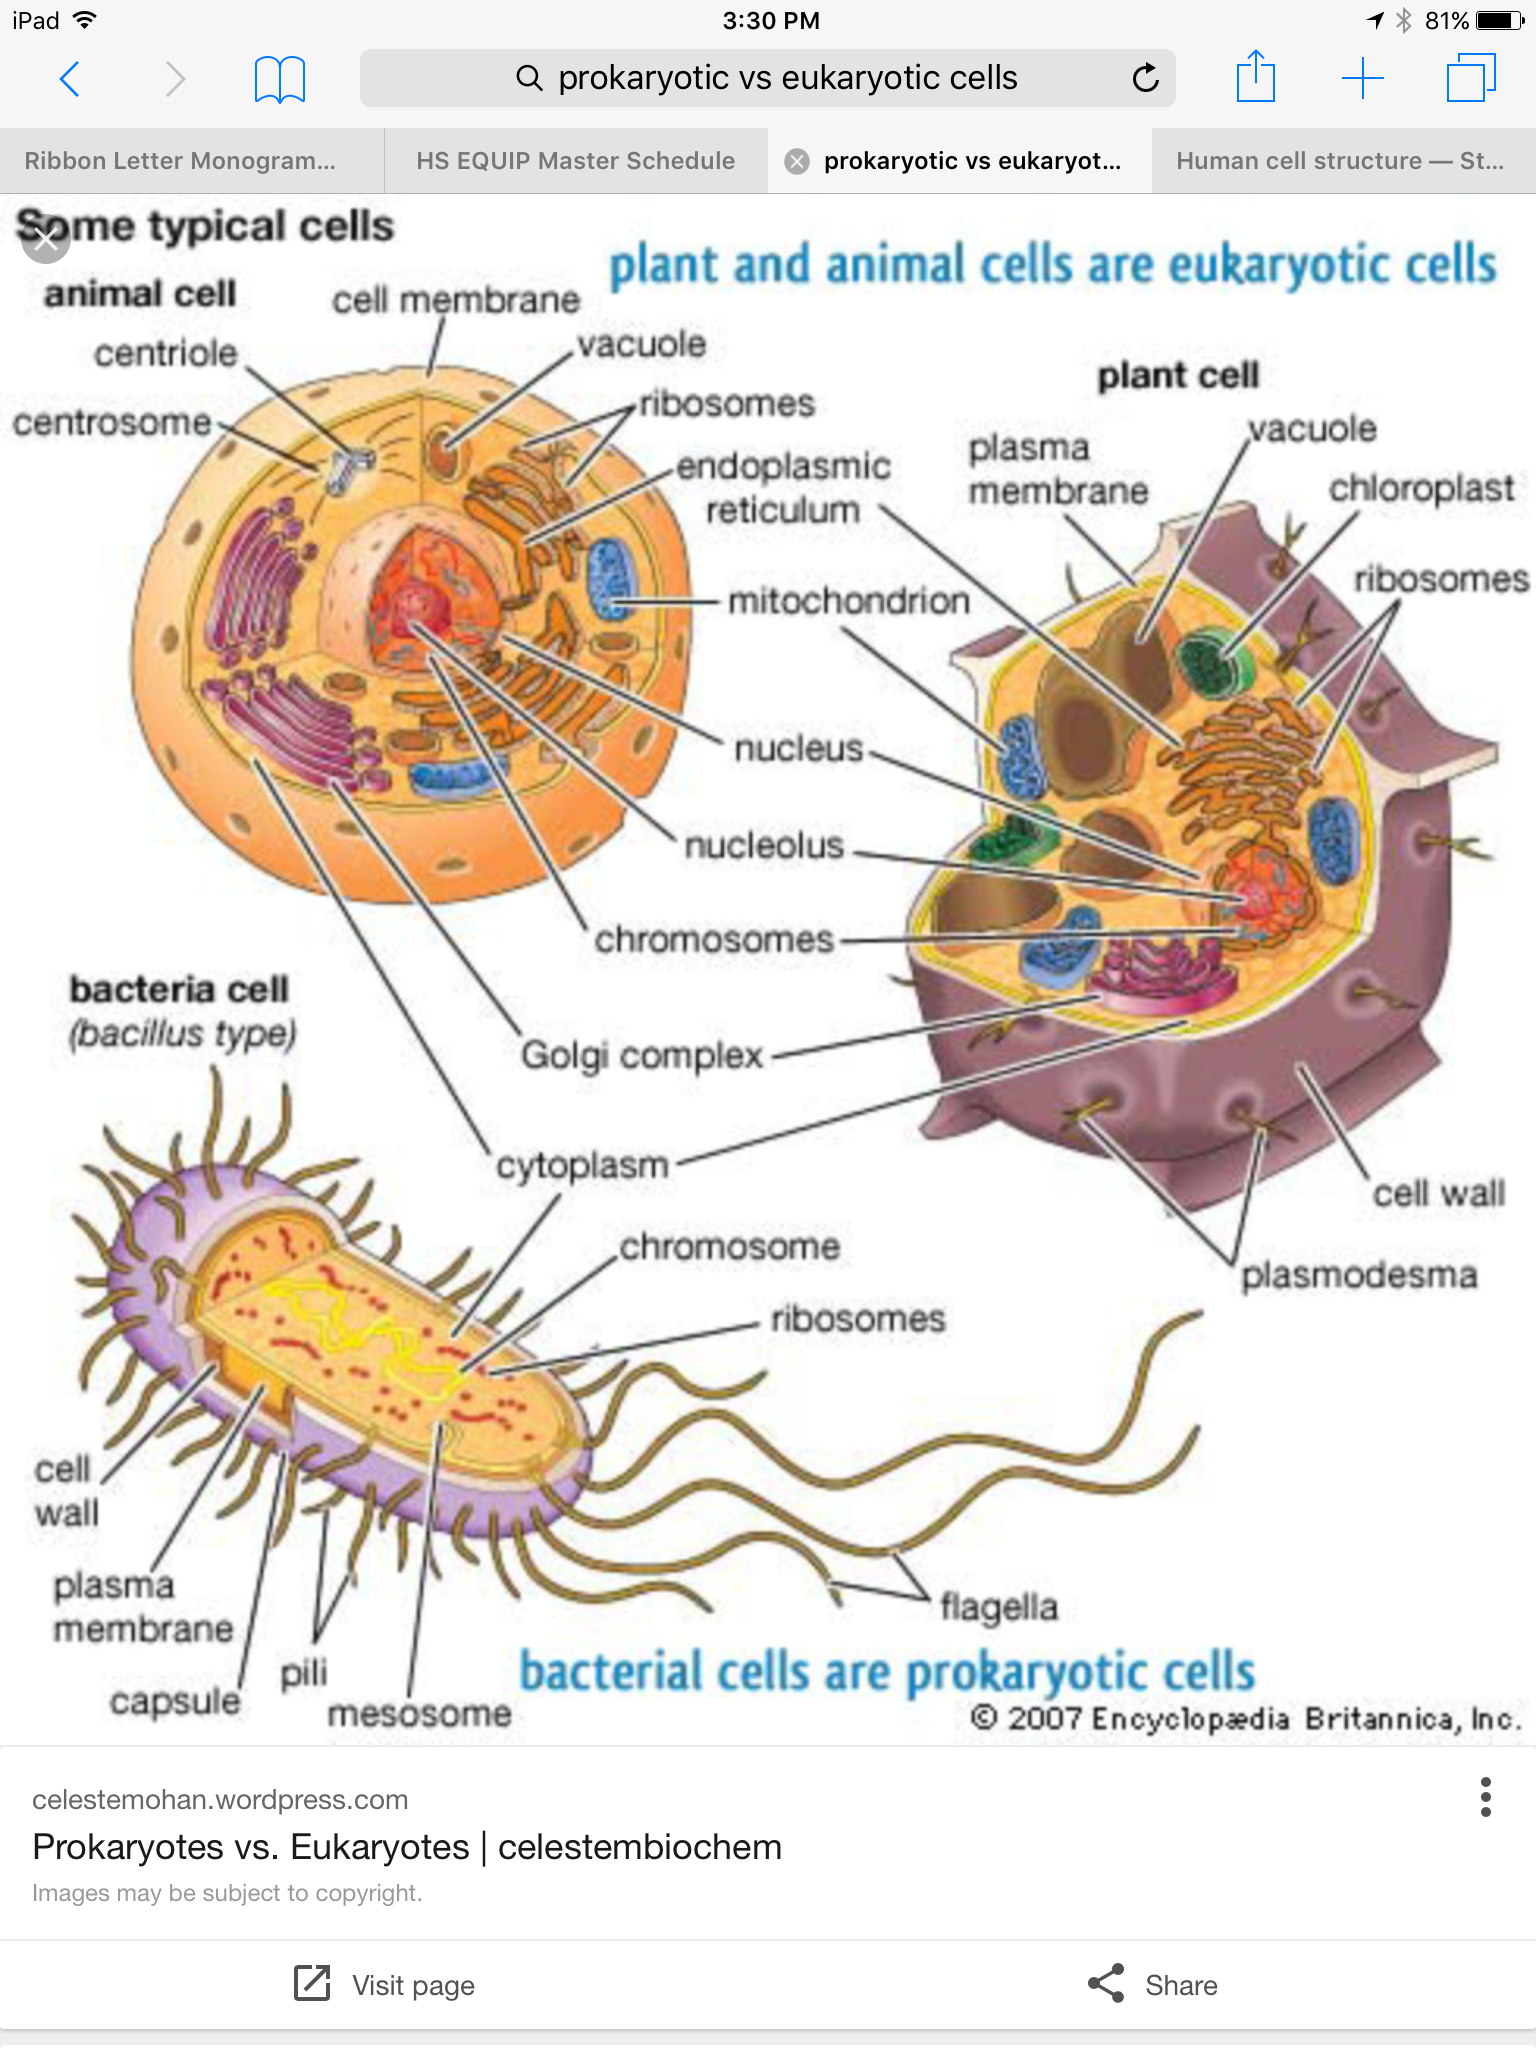 Pin by Jenny Simmons on Flash- biology | Plant and animal ...